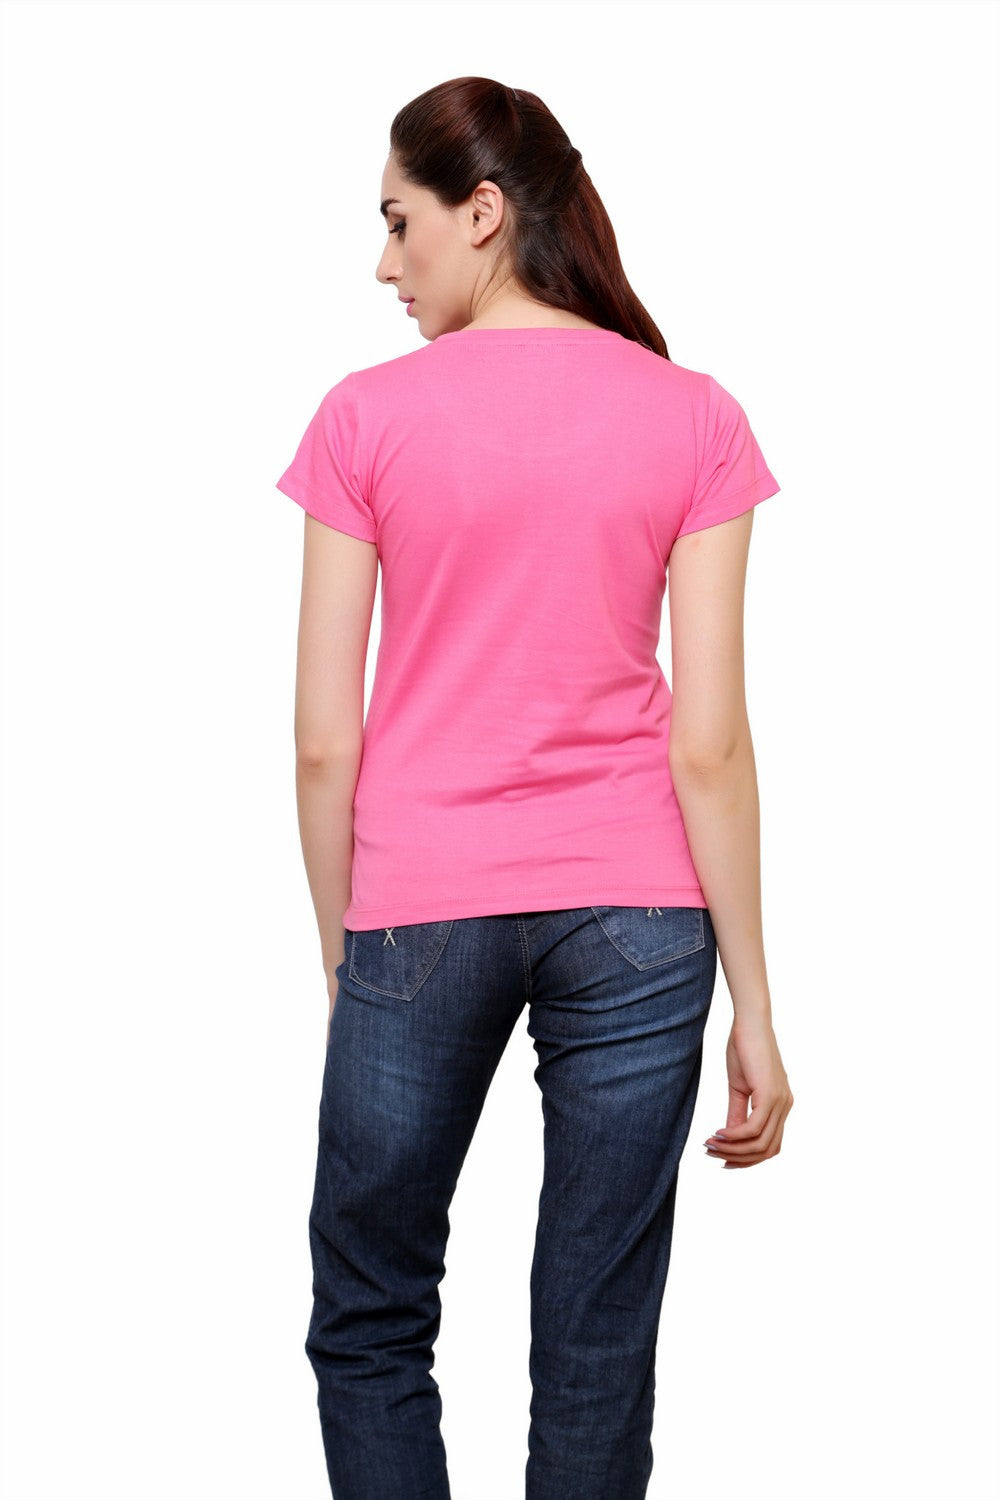 Hand-painted Pink Jewel T-shirt - RANGRAGE